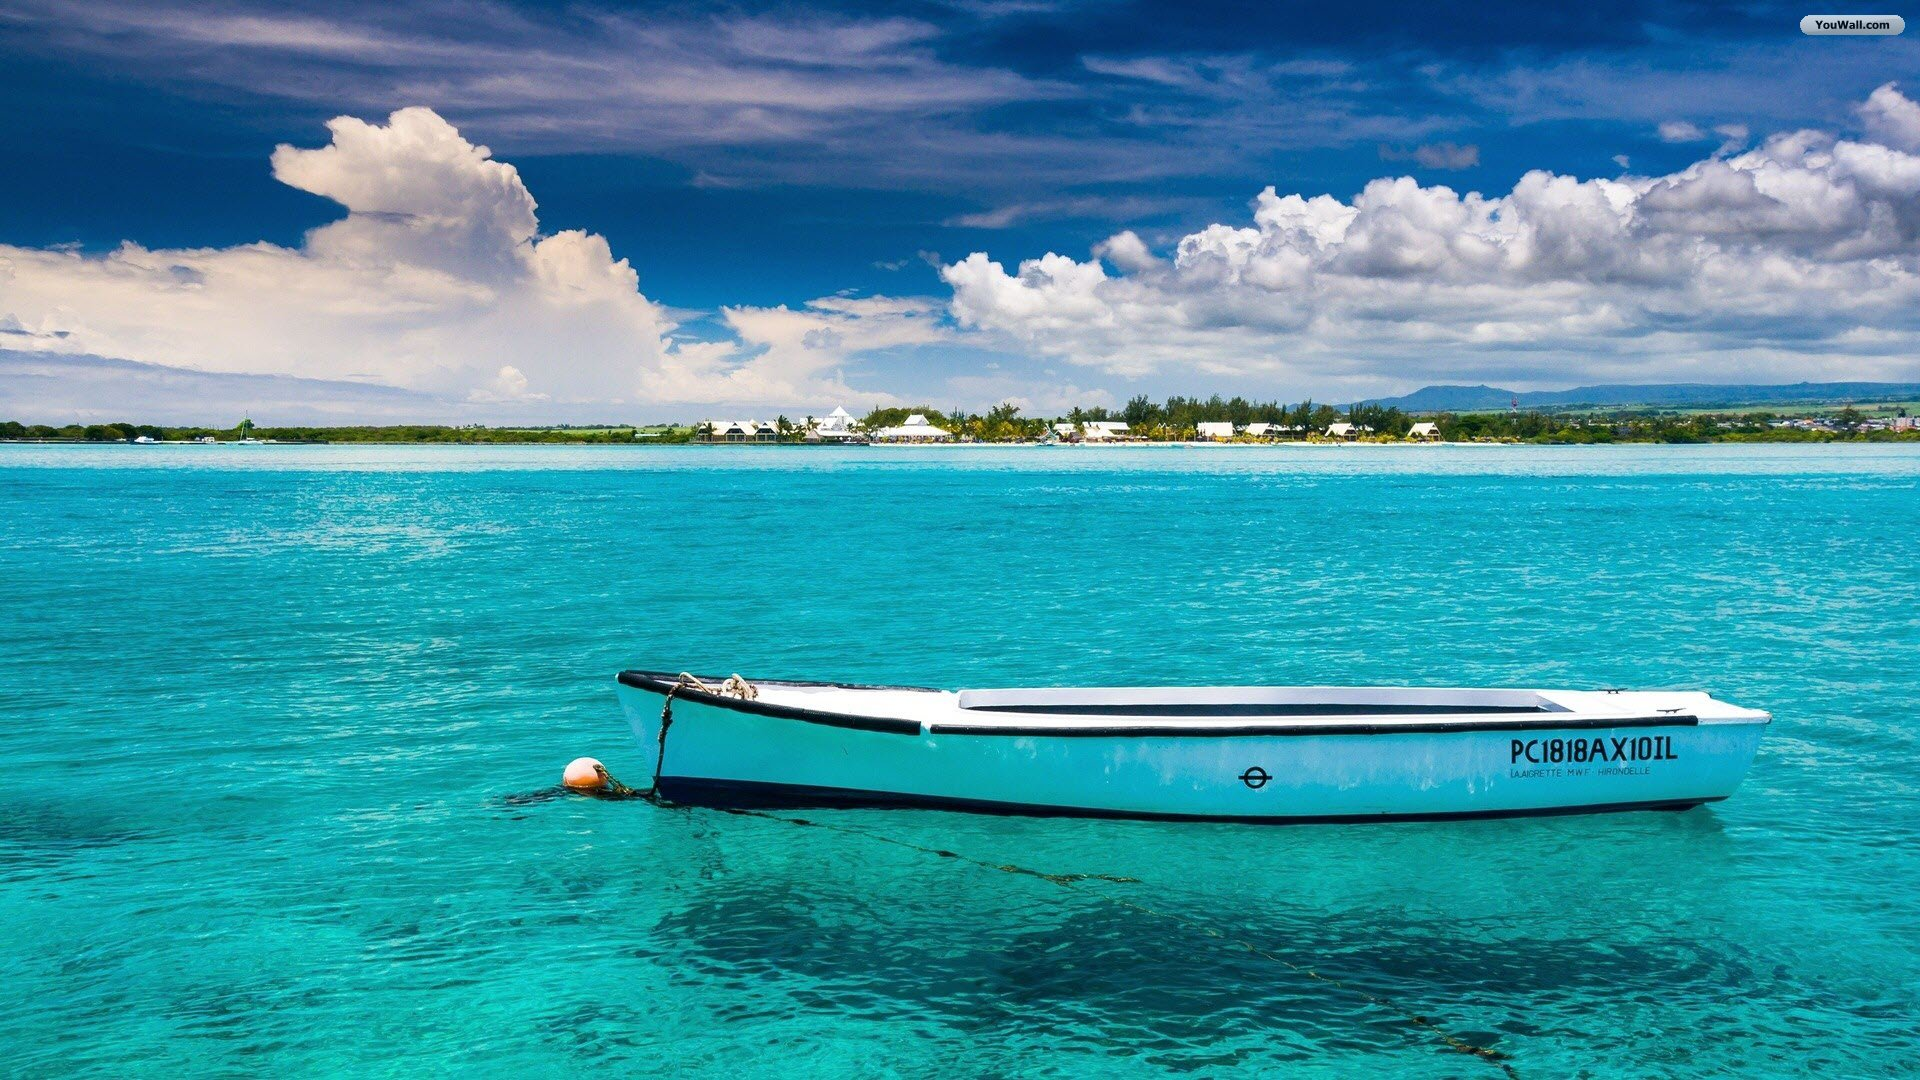 Free Download Youwall Lonely Boat Wallpaper